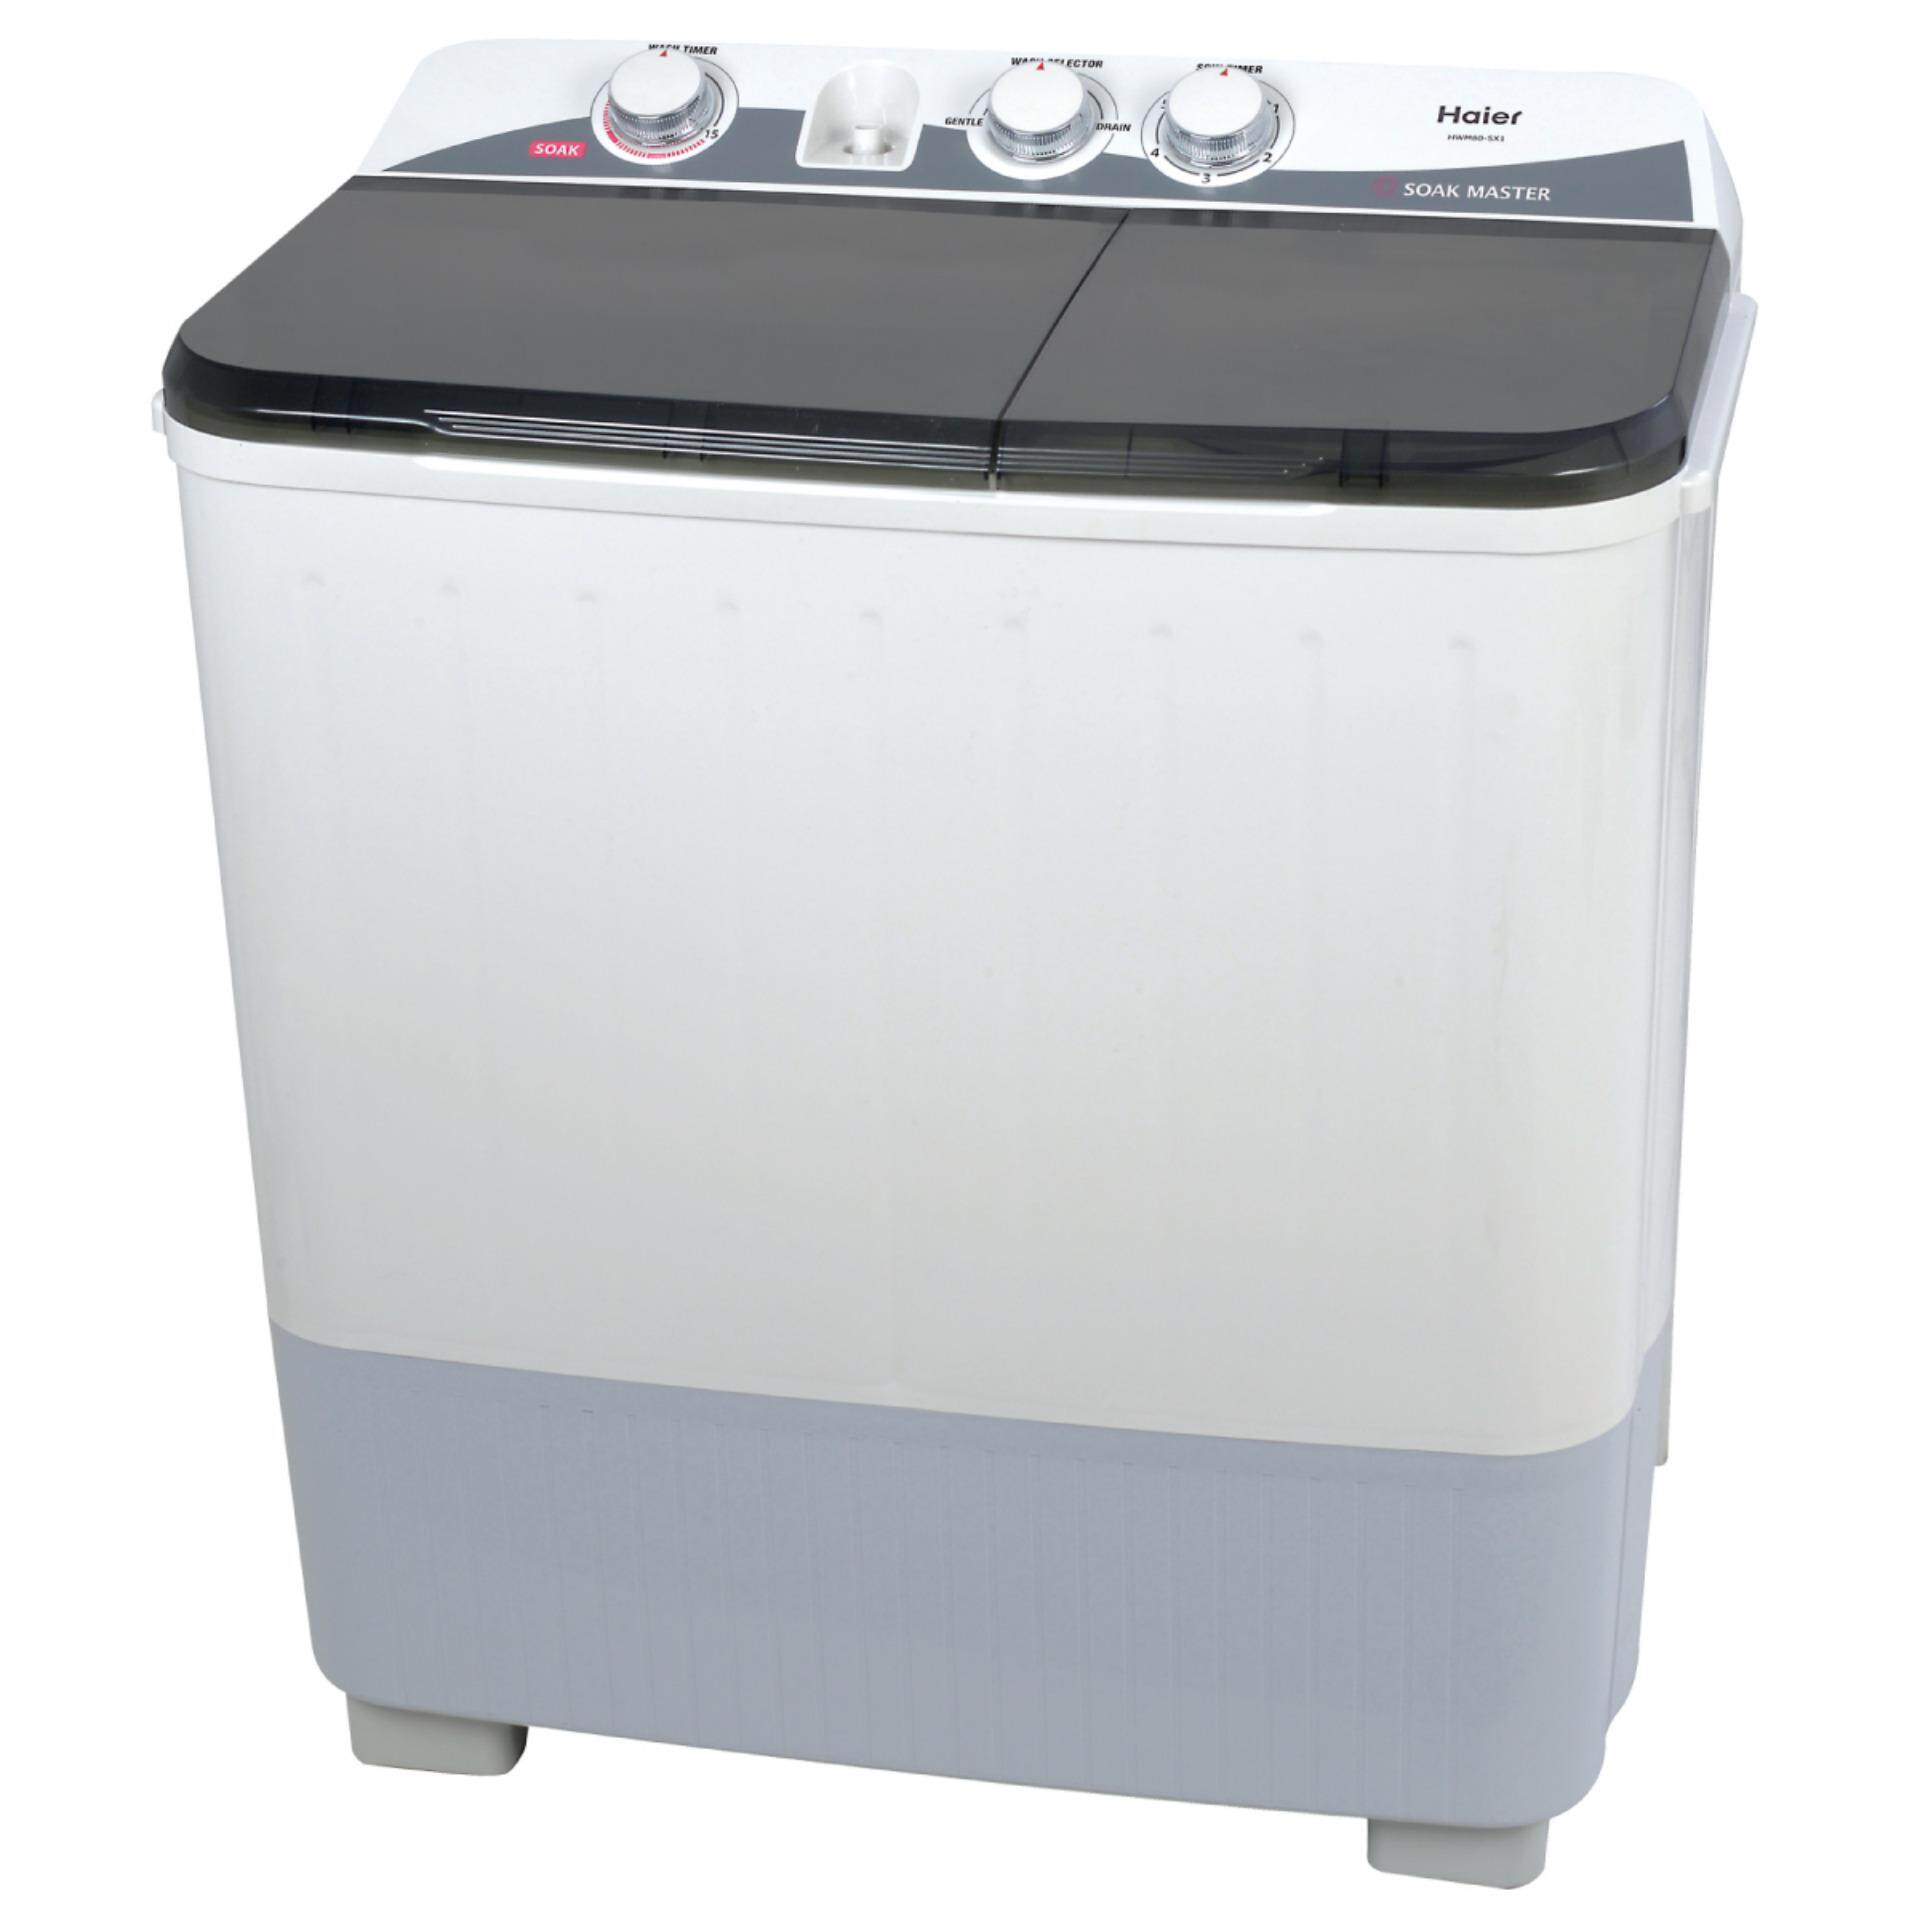 HAIER S/AUTO WASHING MACHINE HWM70-SX1